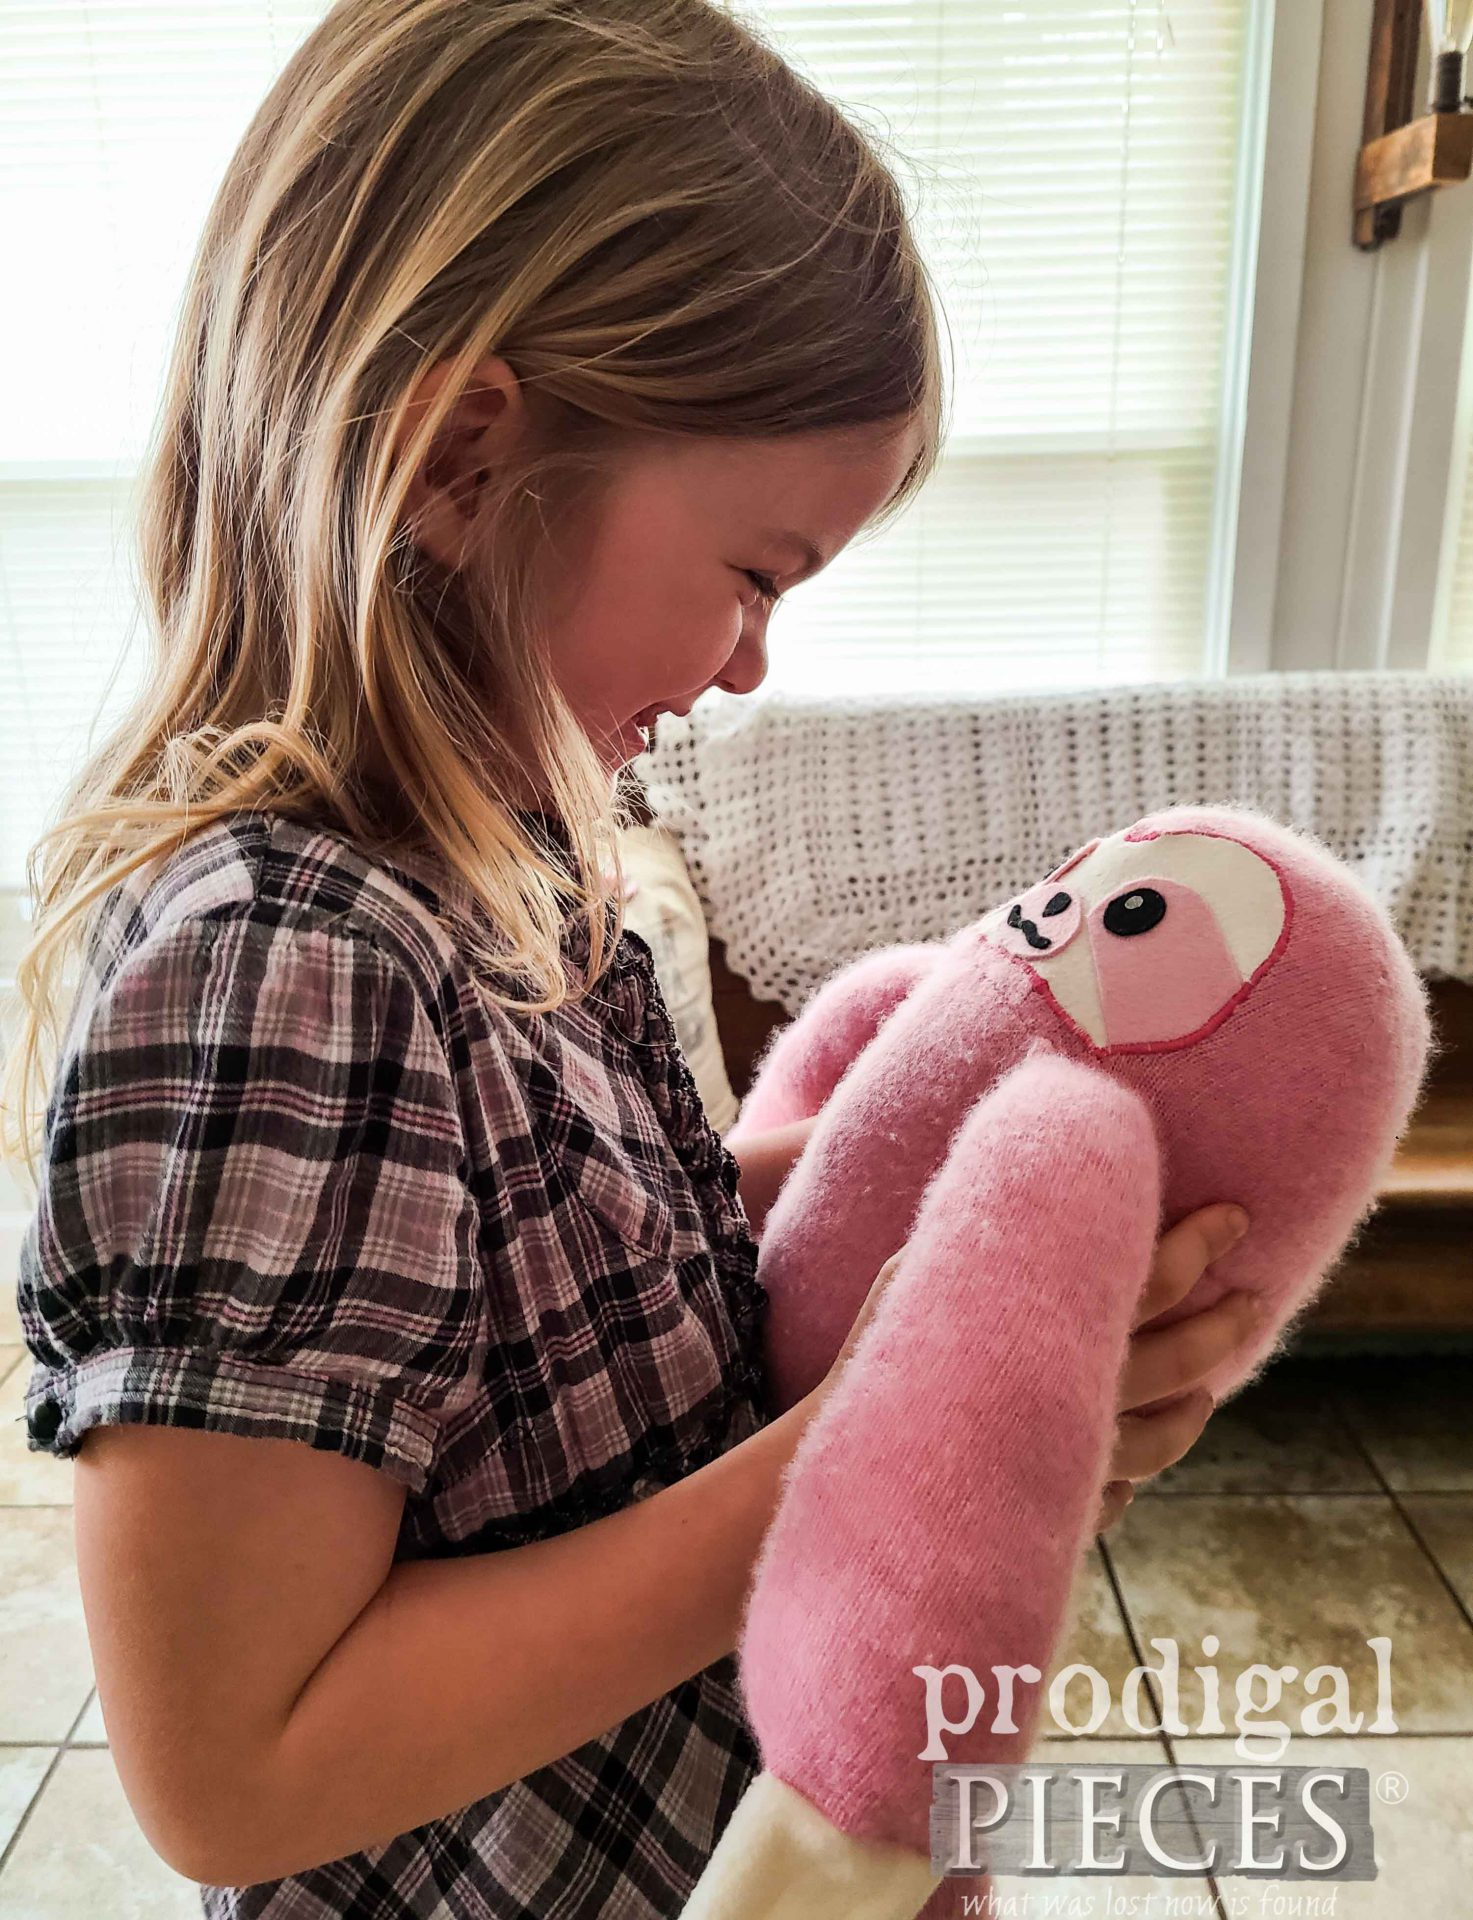 Young Girl with Upcycled Sweater Sloth Plush Toy by Larissa of Prodigal Pieces | prodigalpieces.com #prodigalpieces #toy #kids #refashion #upcycled